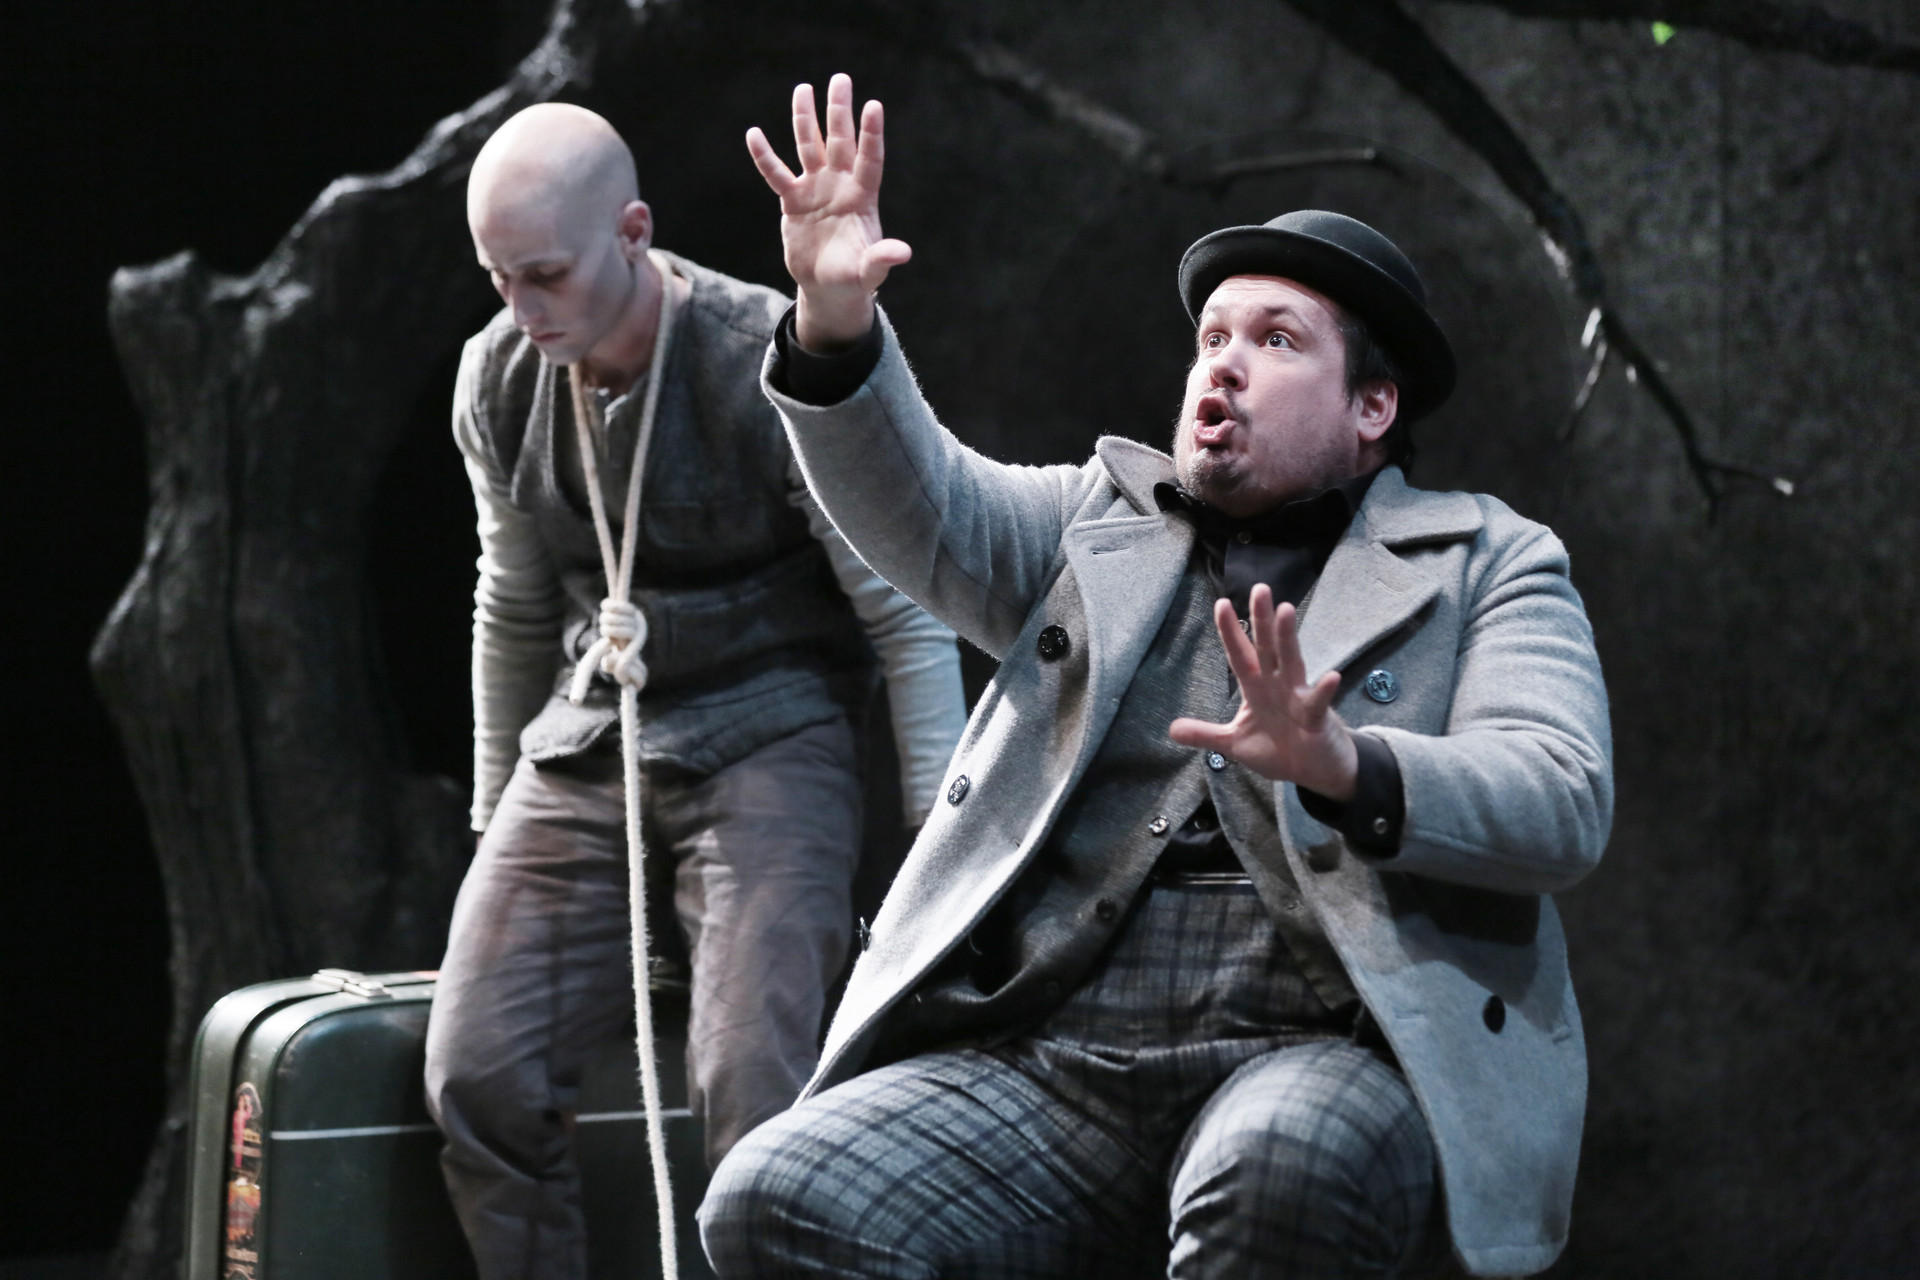 Theatre du Pif's Waiting for Godot